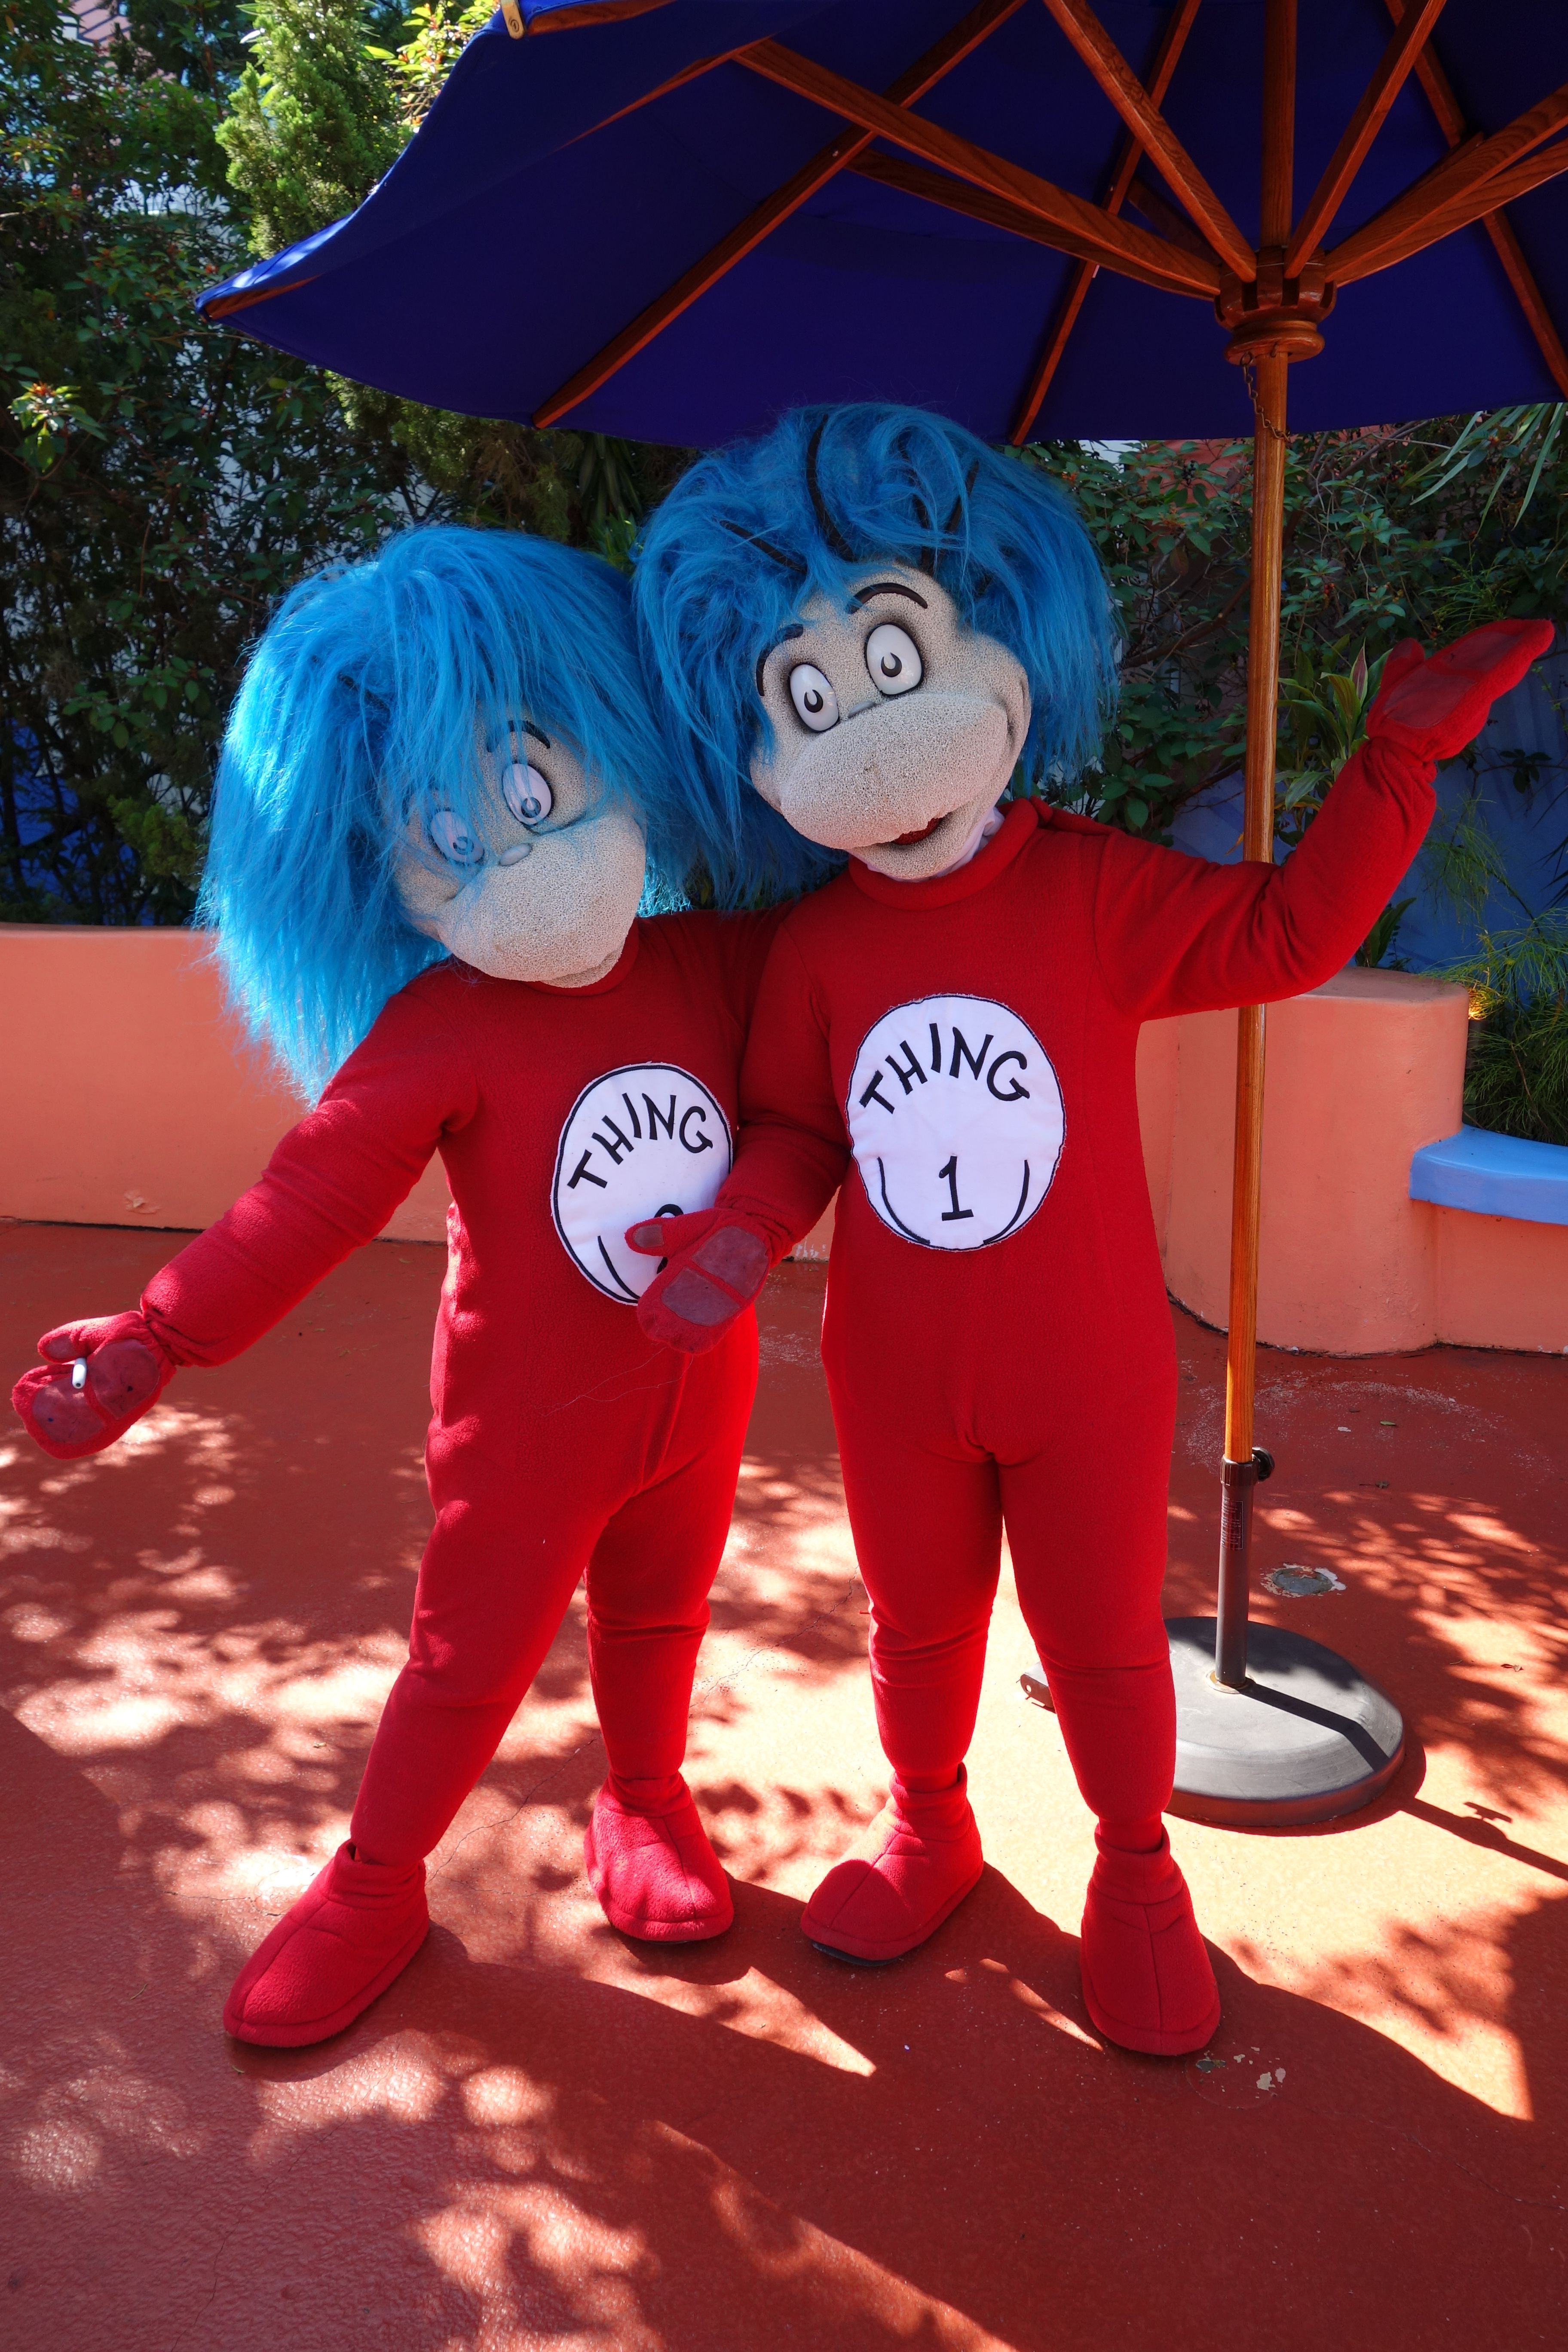 Thing 1 And Thing 2 Universal Islands Of Adventure Disney World Characters Islands Of Adventure